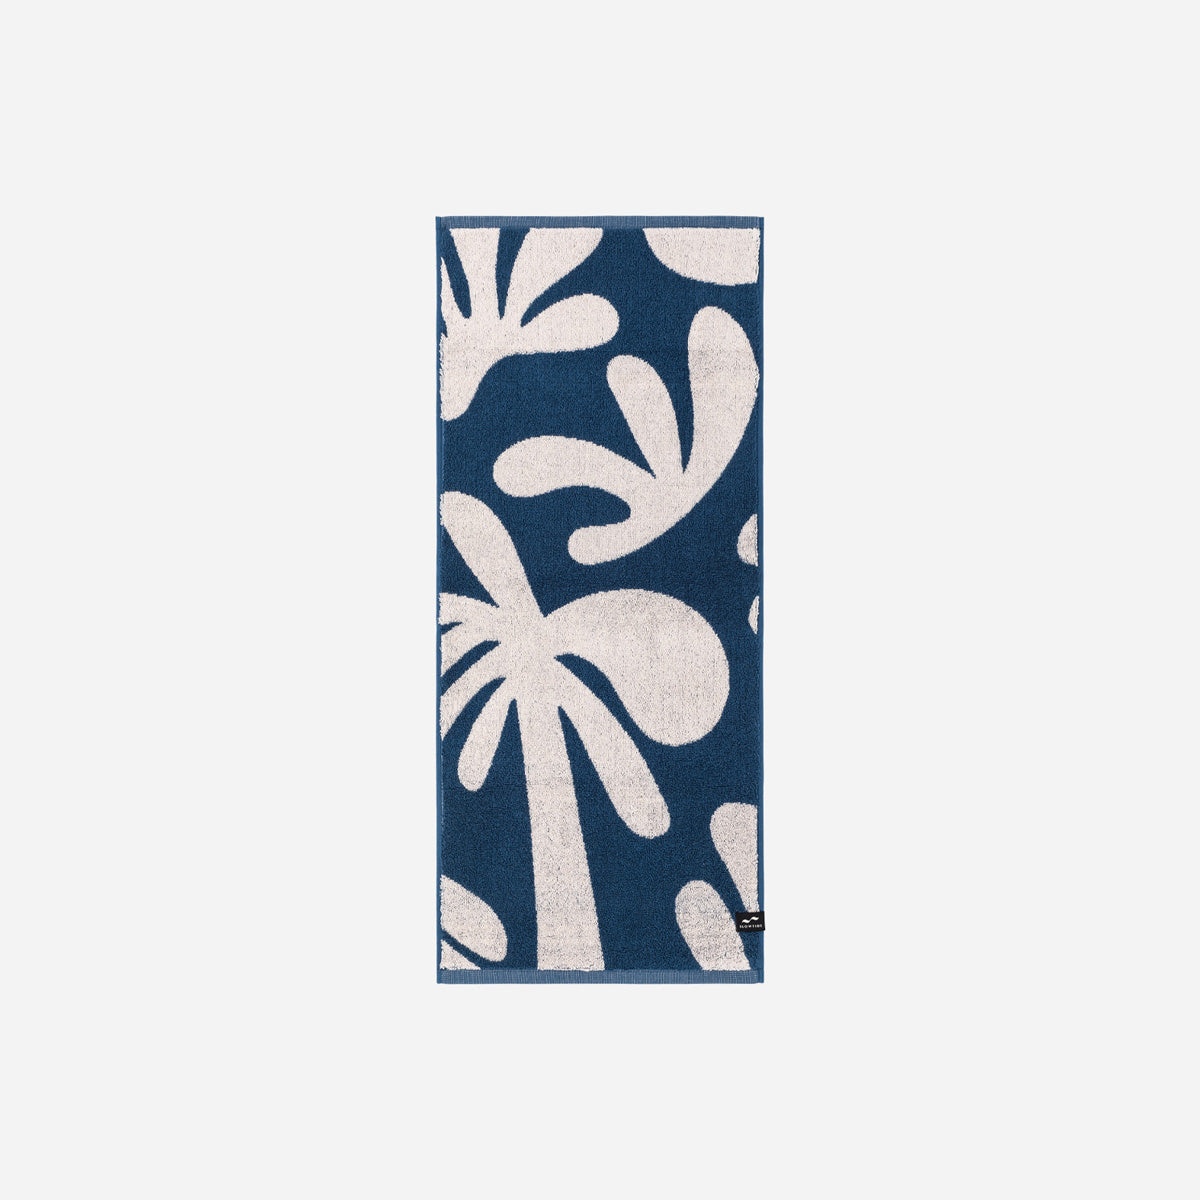 Kingston Hand Towel - Slowtide